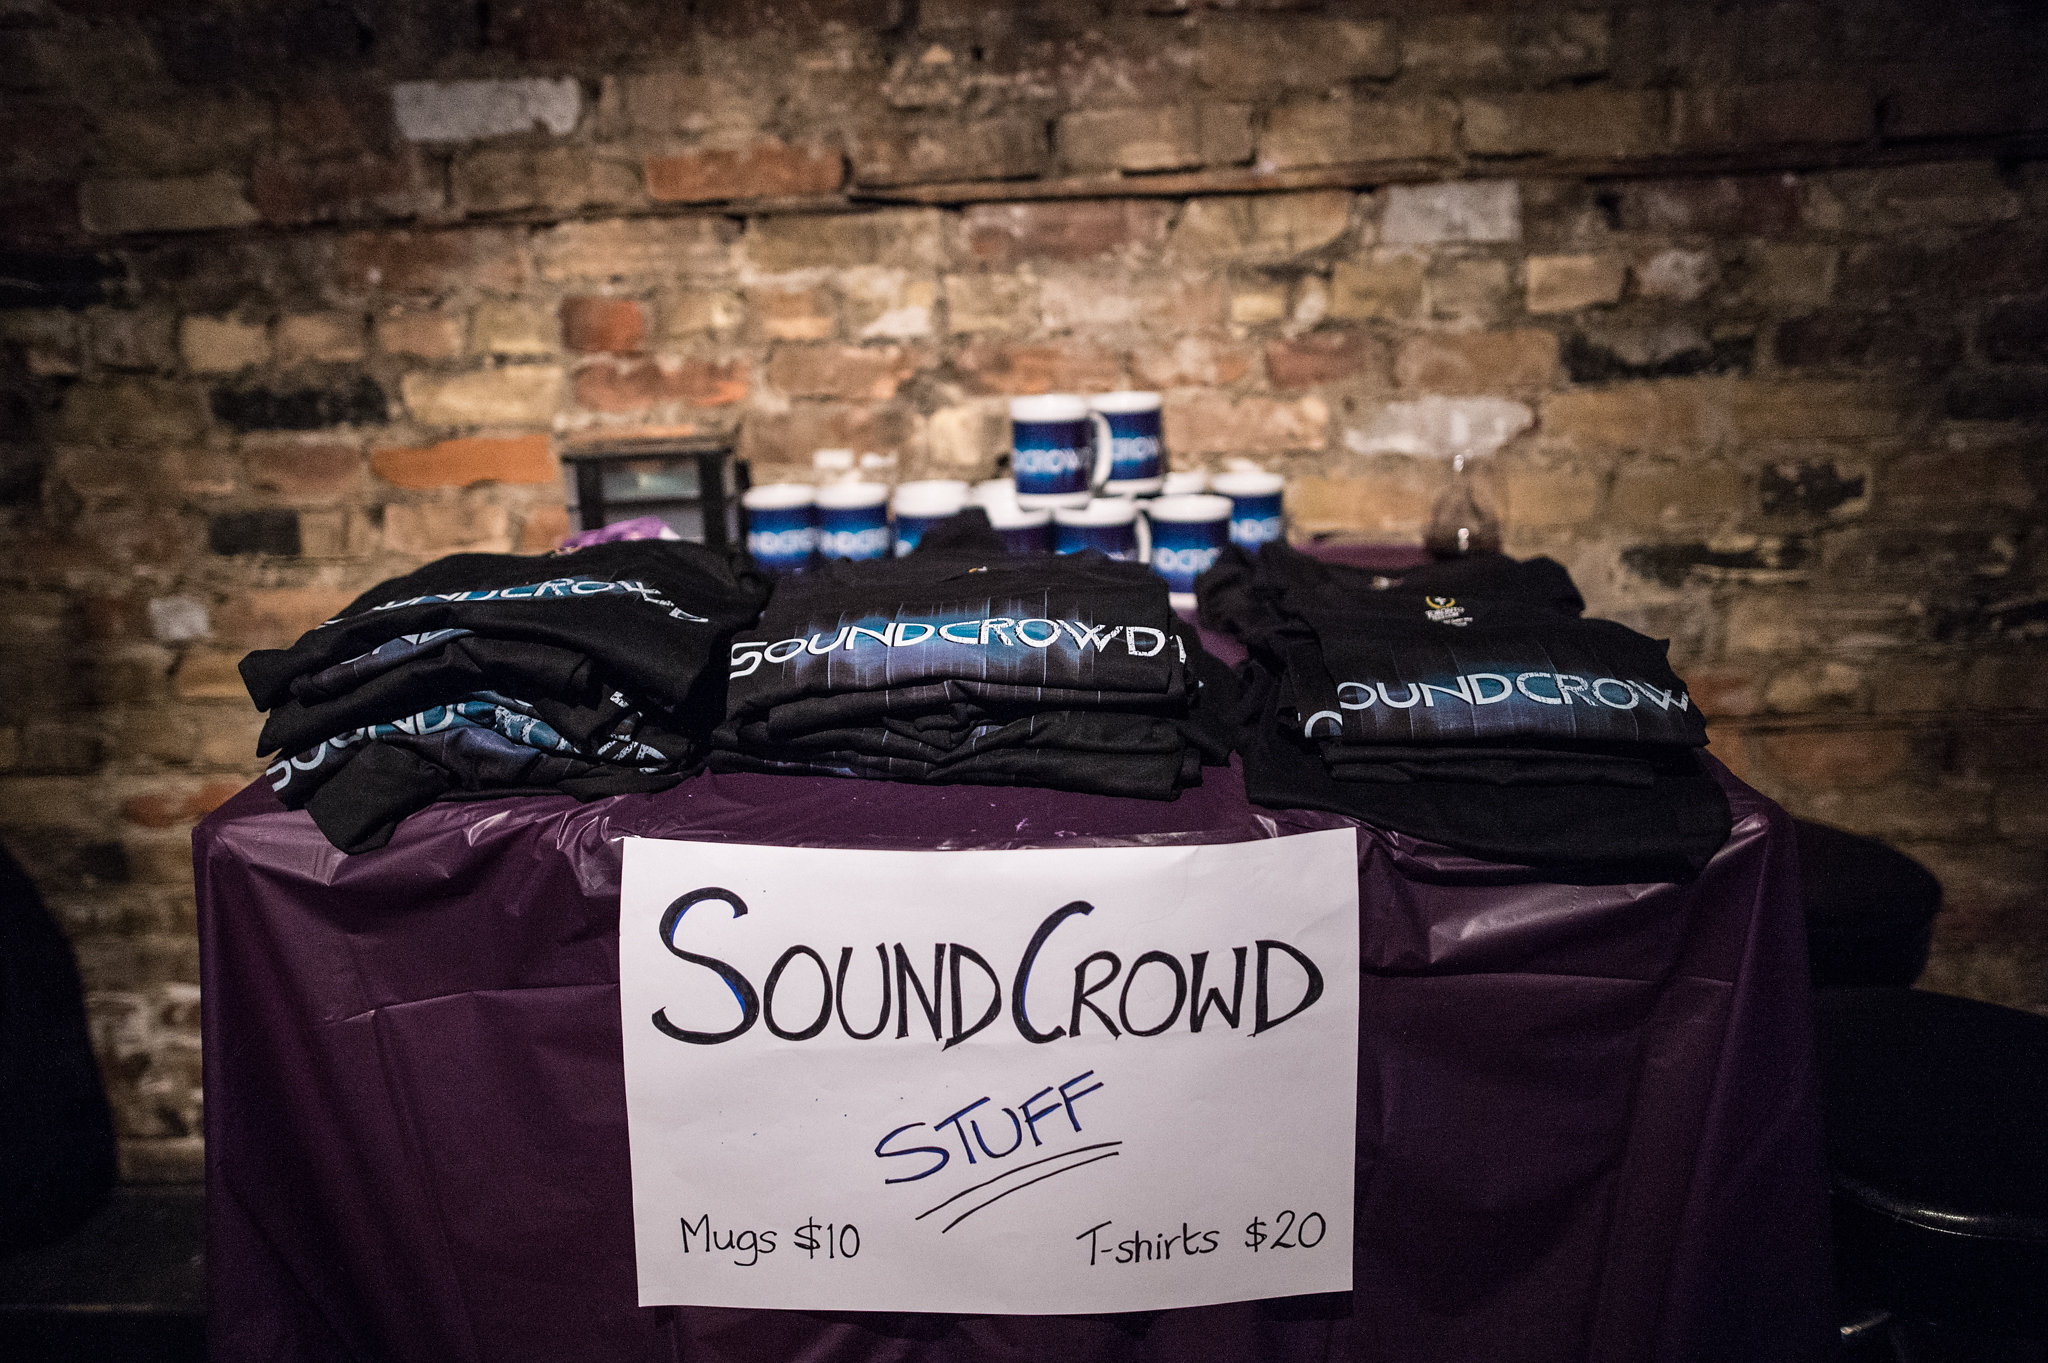 SoundcrowdLaunch-WEB-0669